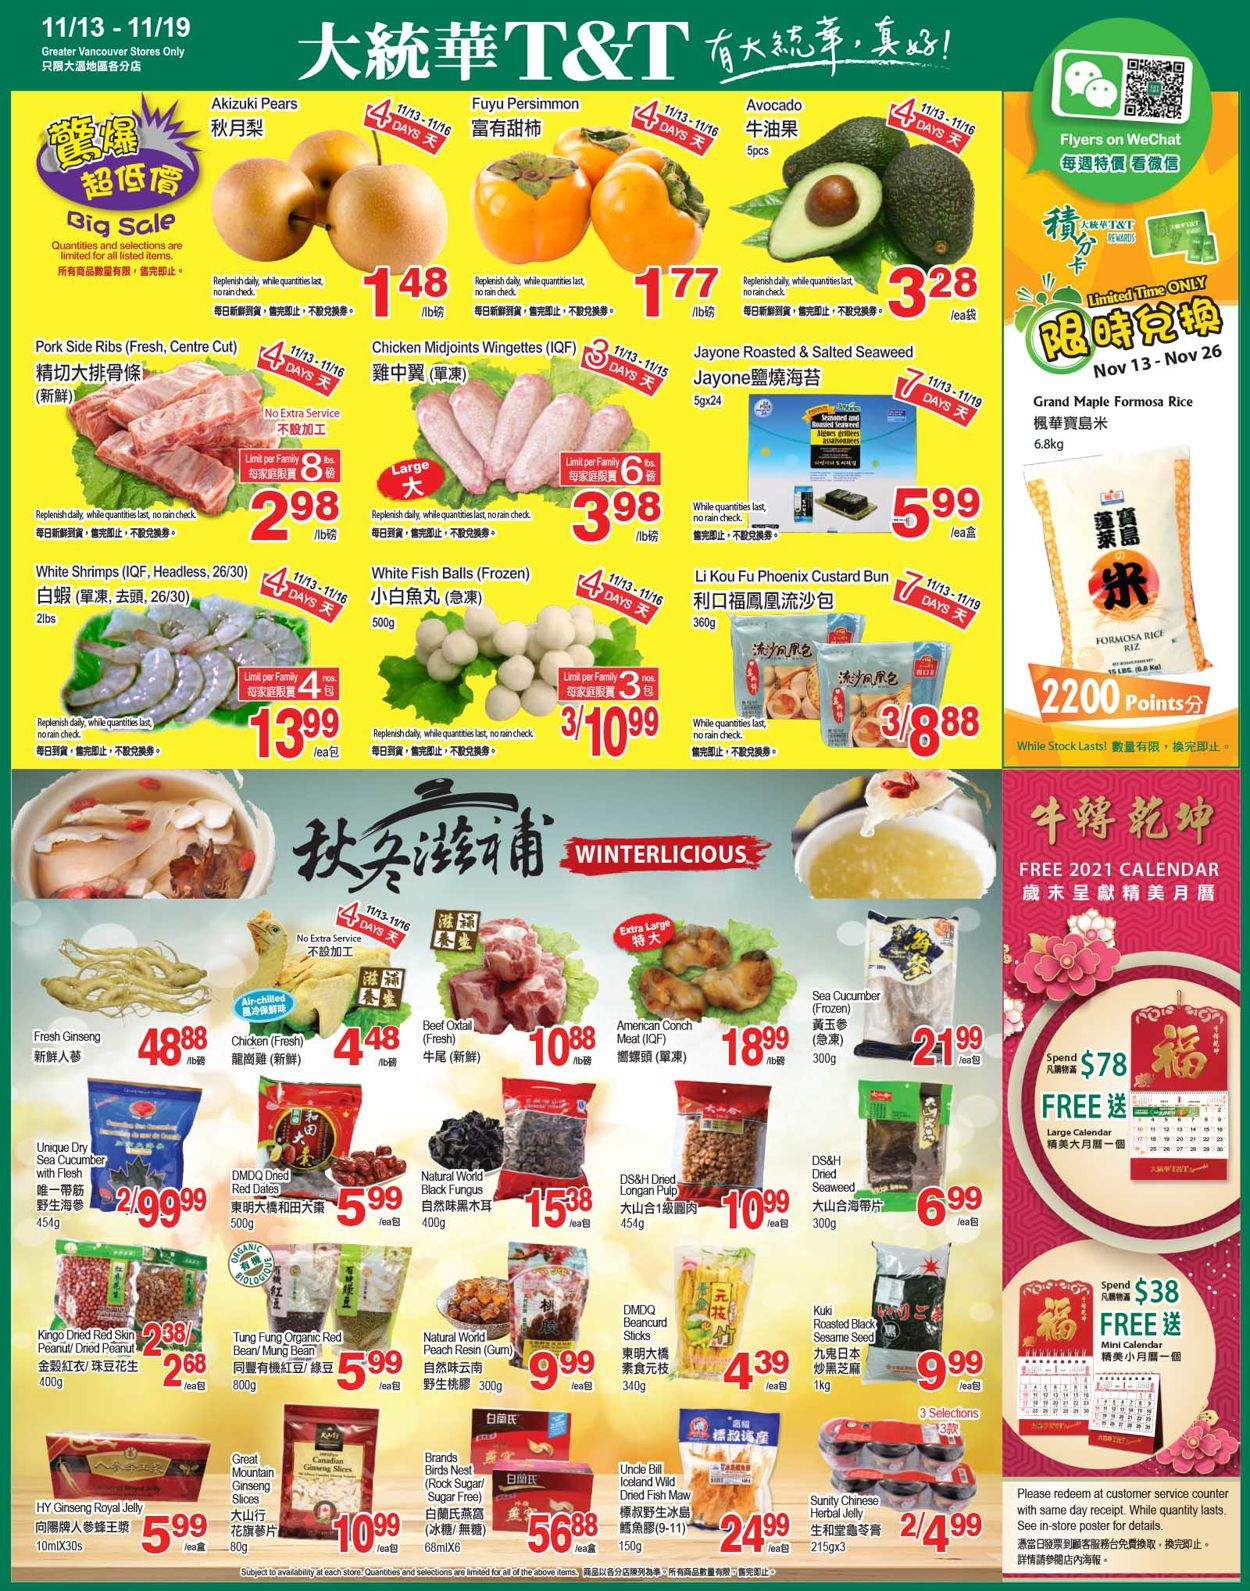 T&T Supermarket - British Columbia Flyer - 11/13-11/19/2020